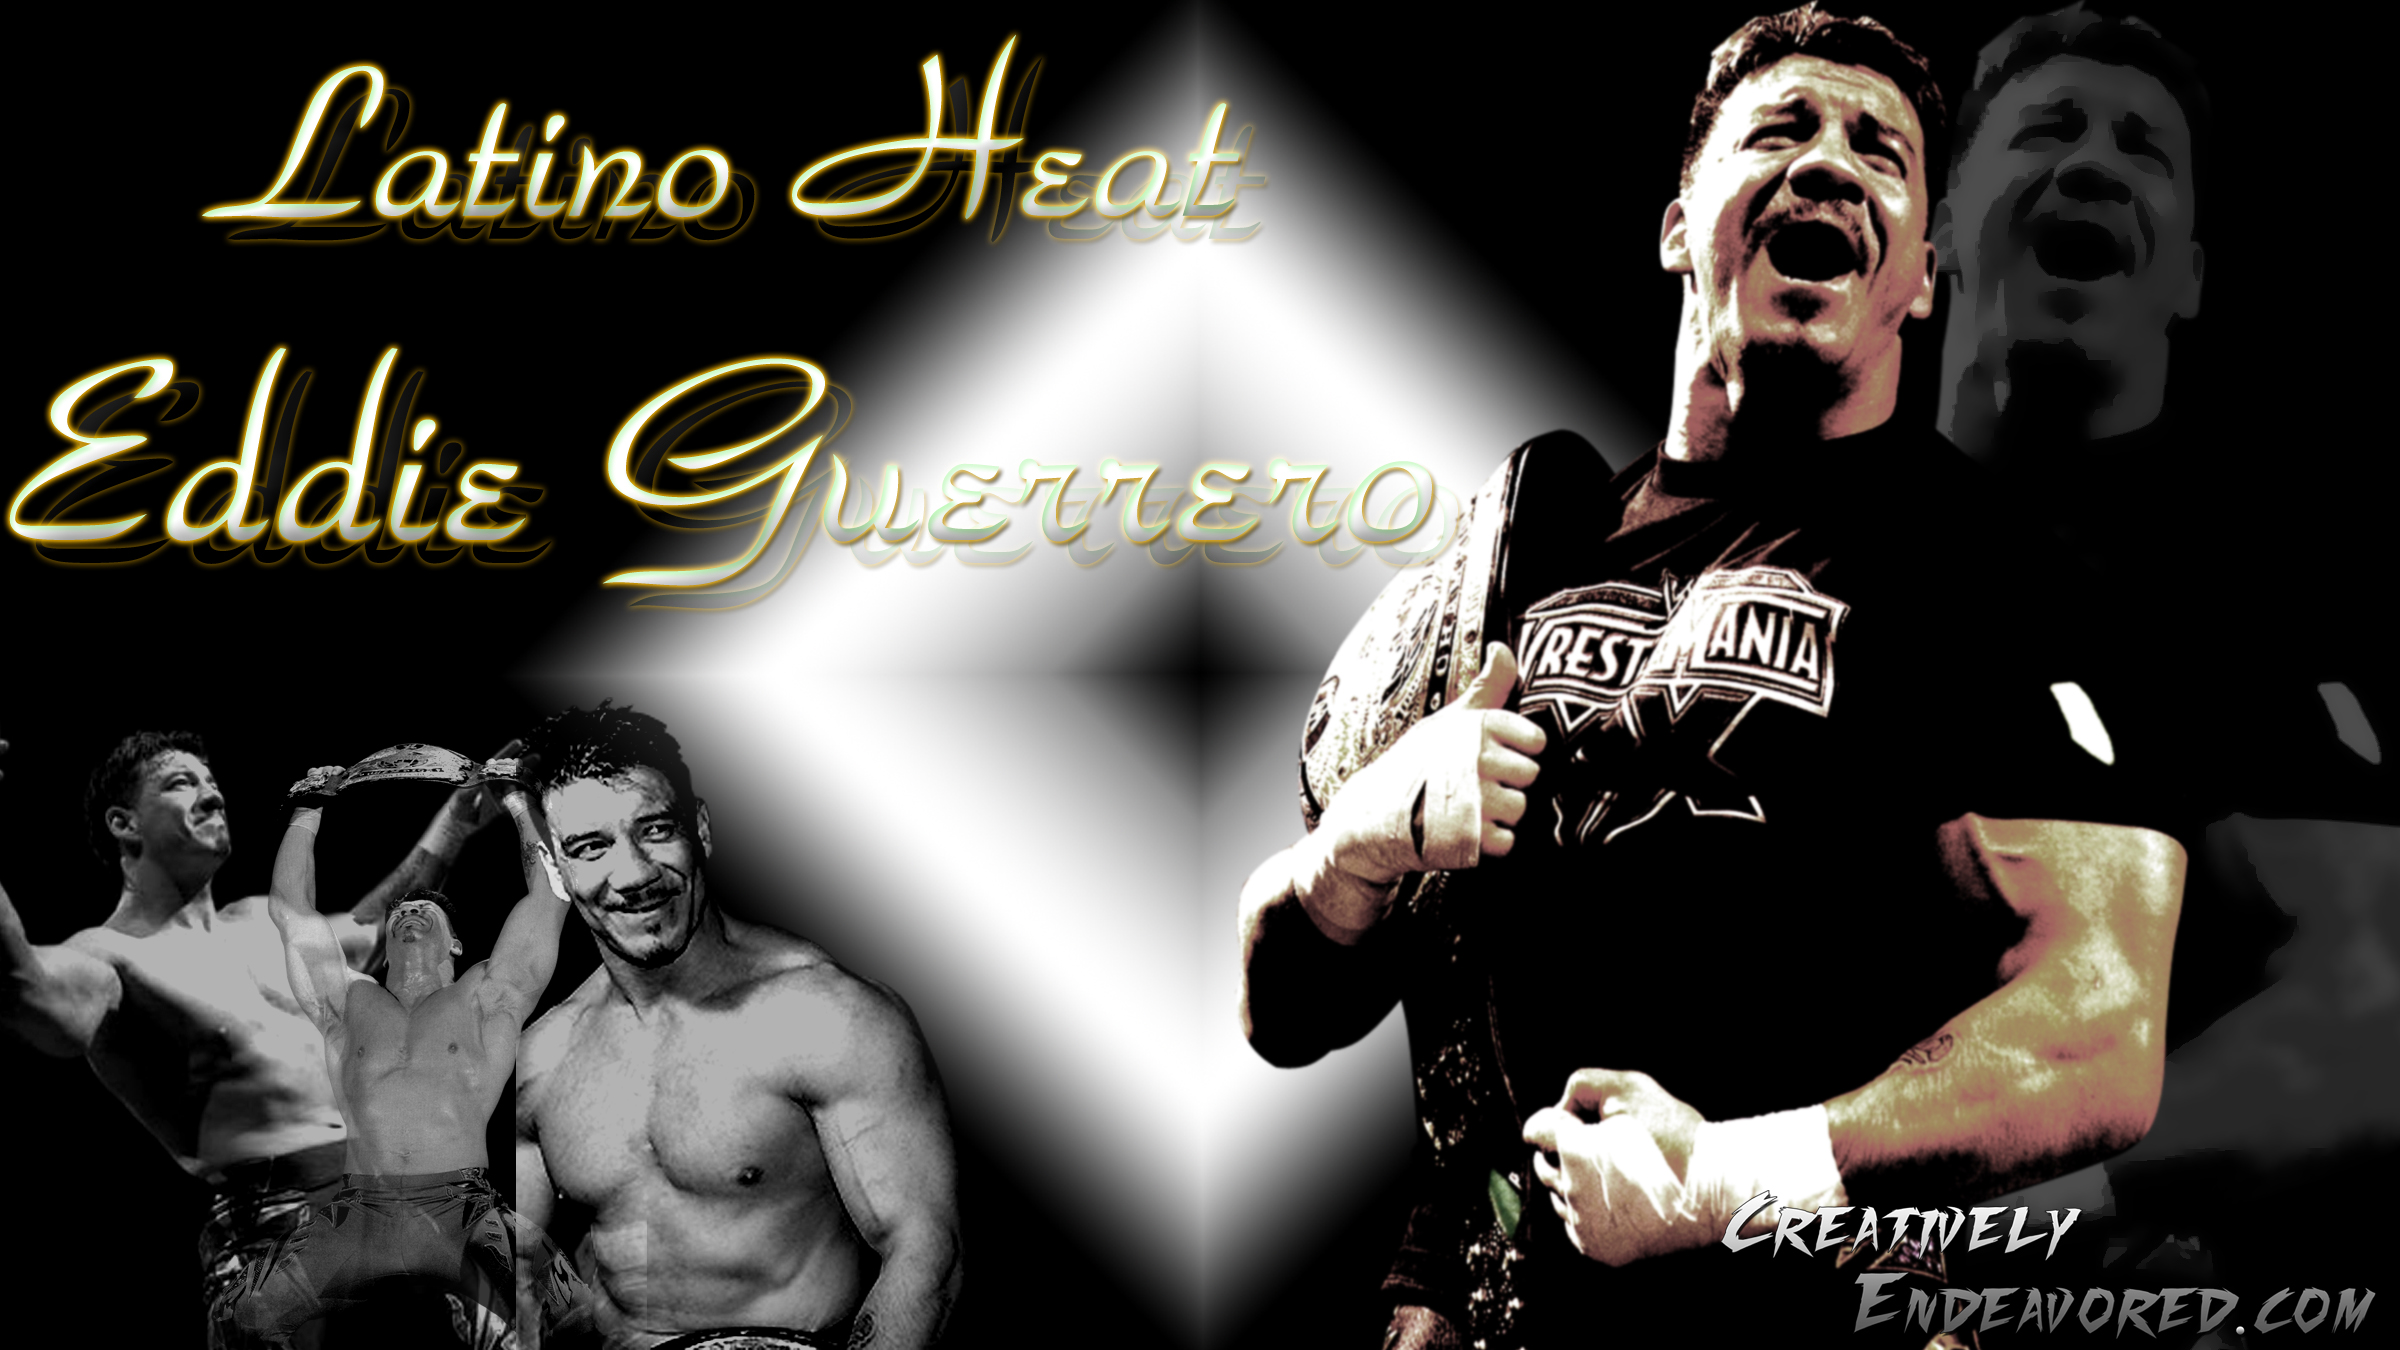 Eddie Guerrero Wallpapers and Background Images   stmednet 2400x1350